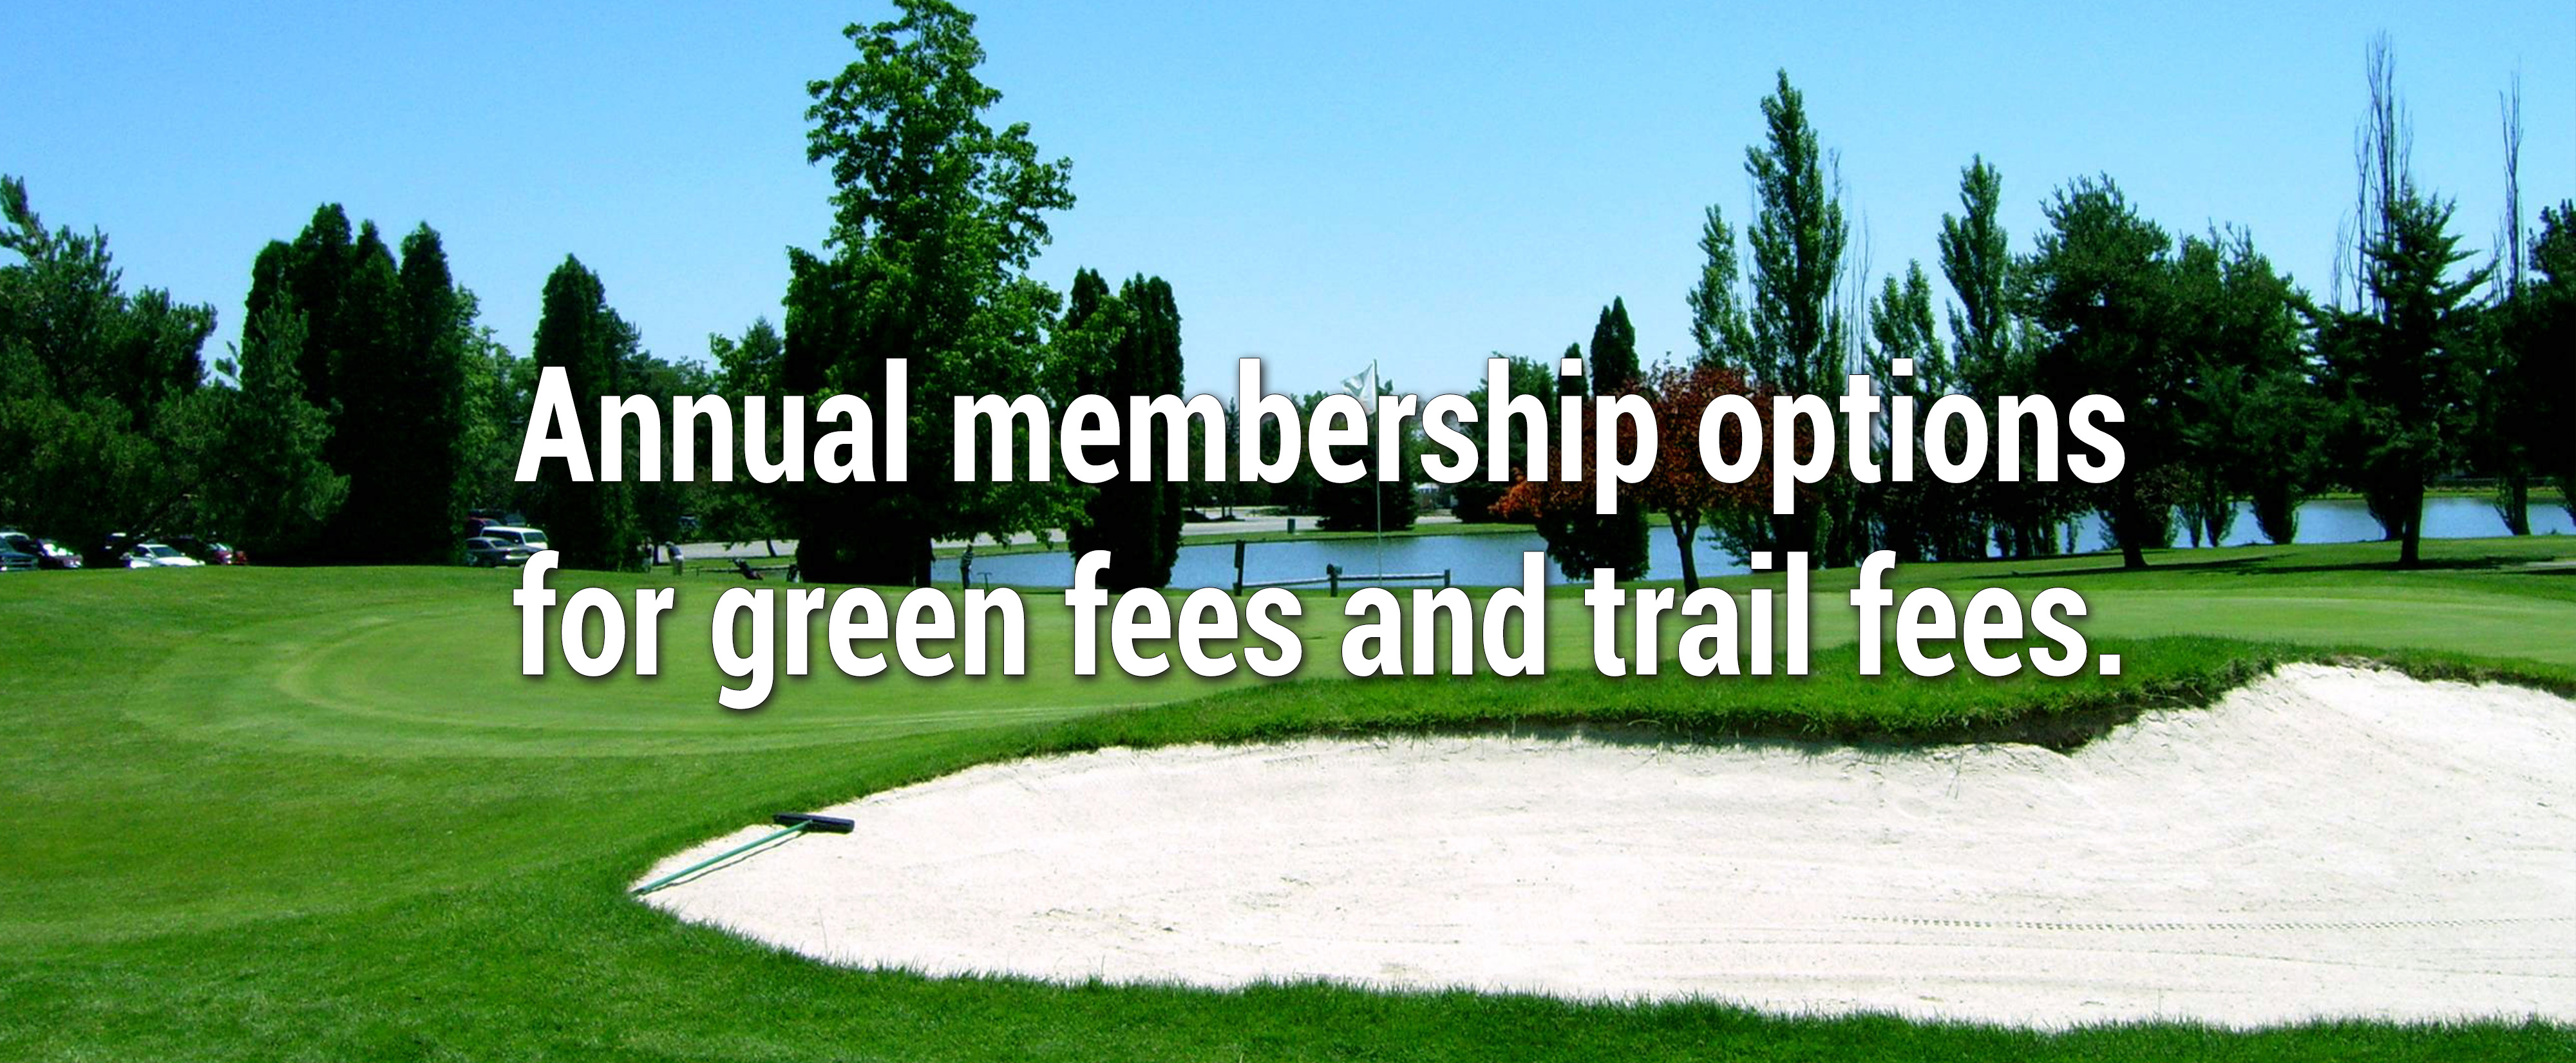 annual golf membership rates for eagle hills golf course green